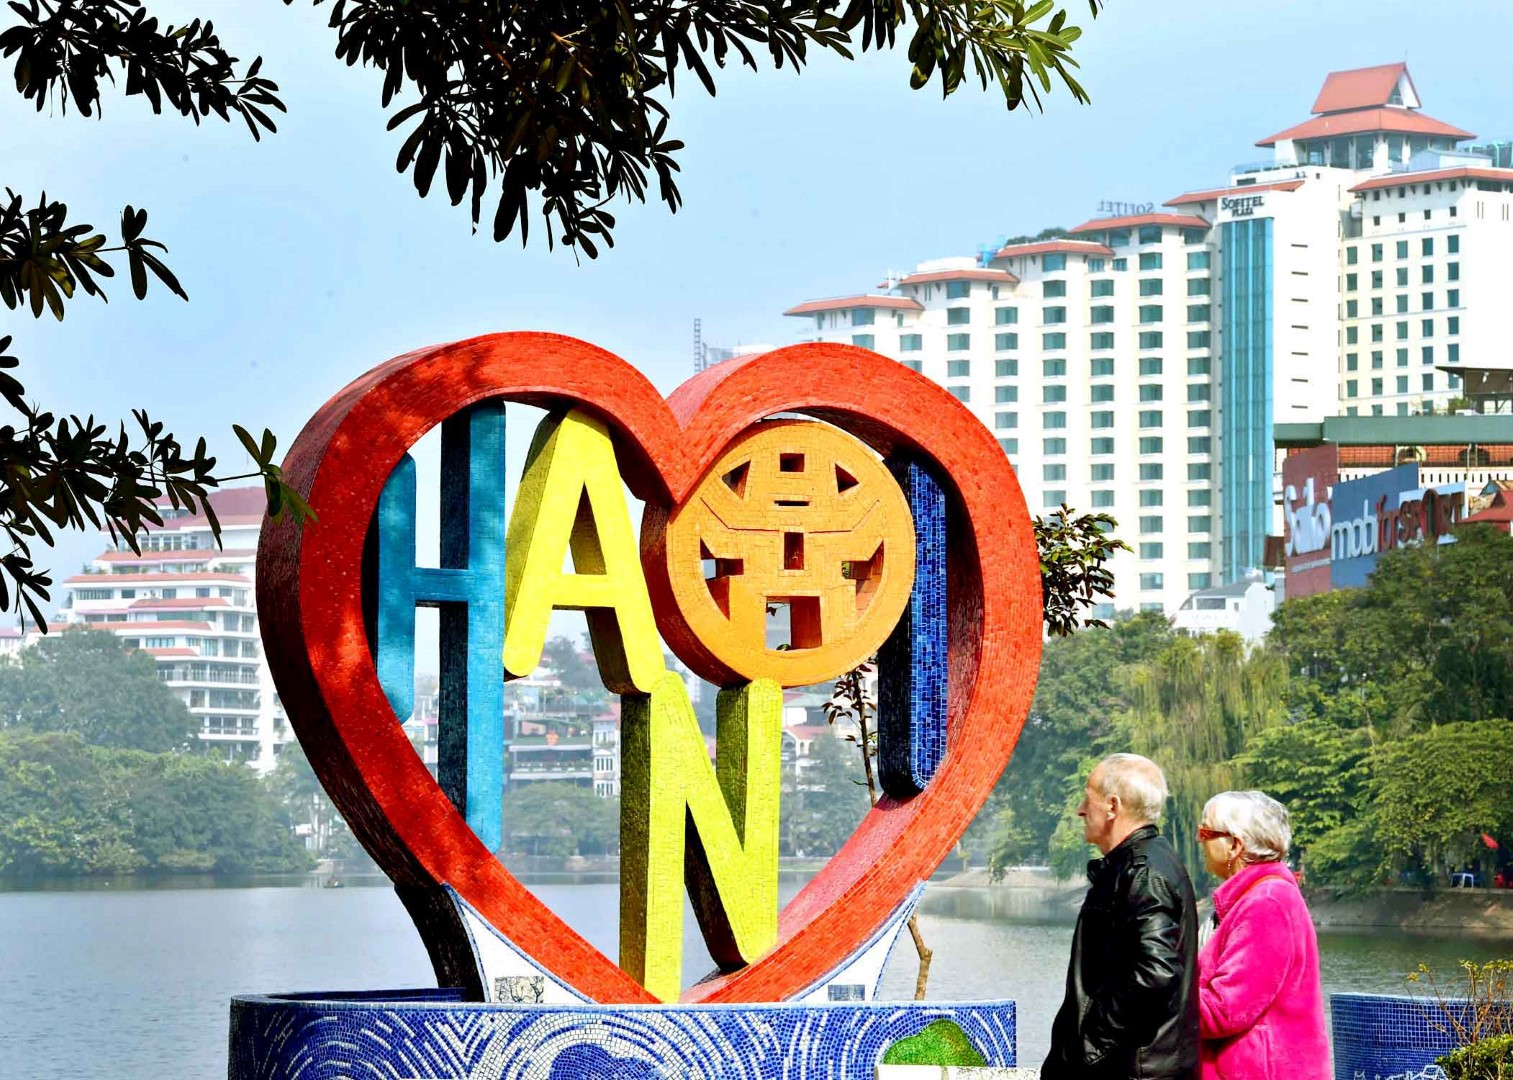 'Love Heart for Hanoi', a heart-shaped sculpture by painter, Nguyen Thu Thuy which won the 10th IDA consolation prize